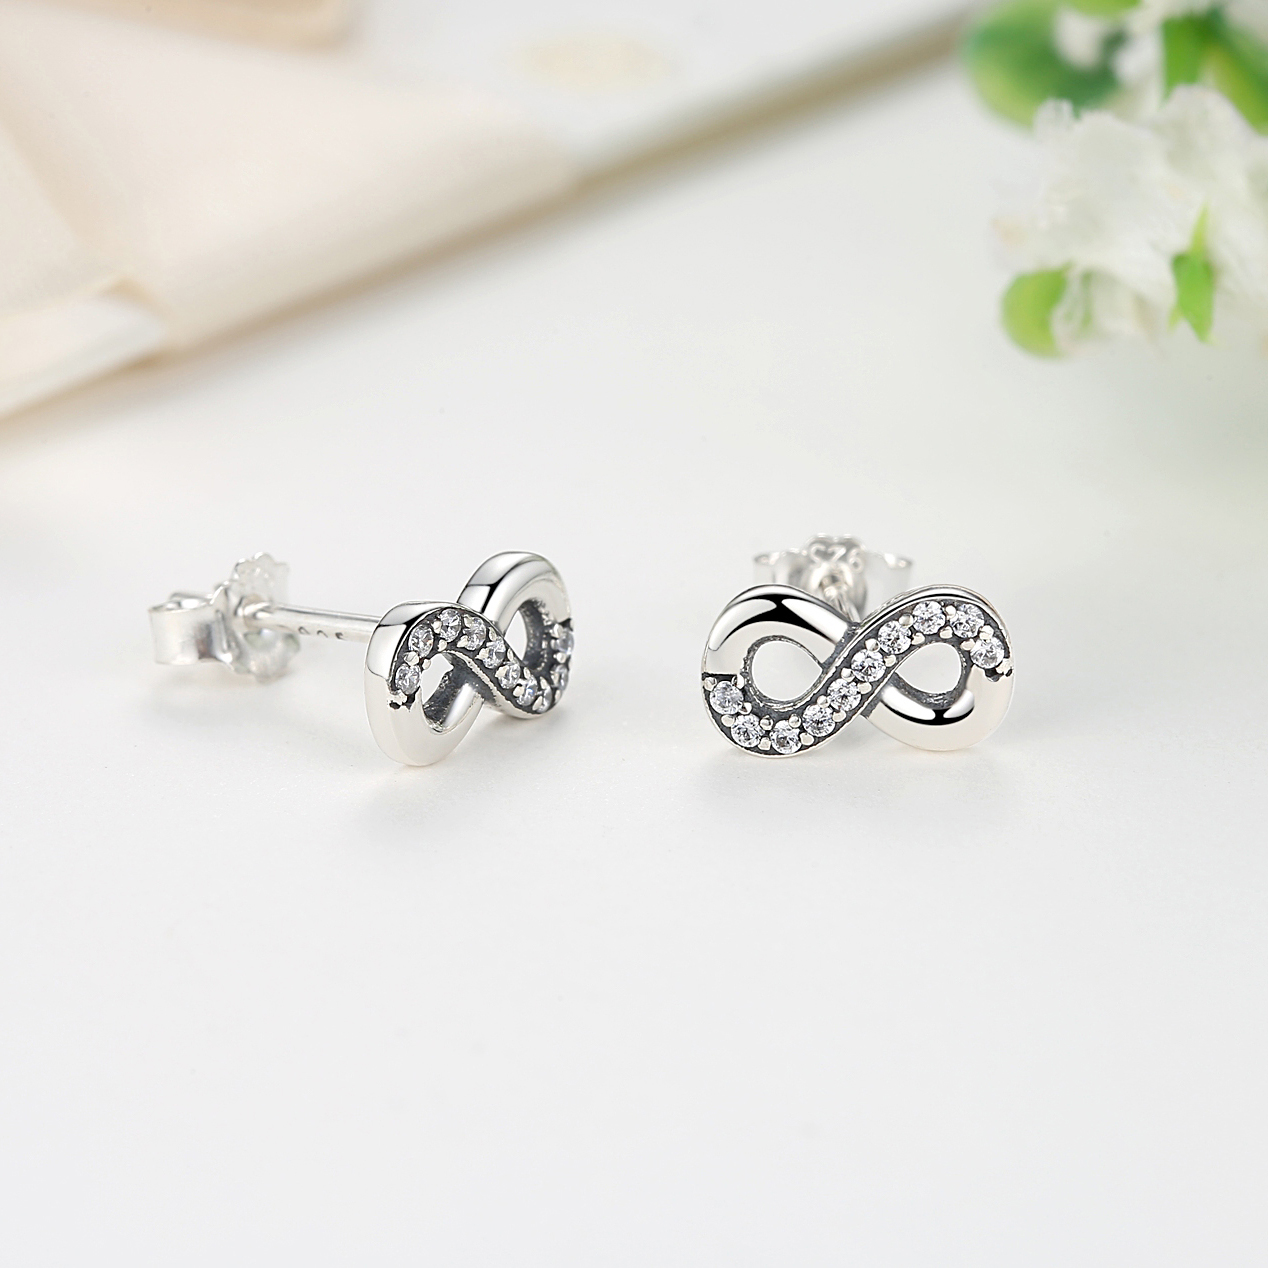 Authentic 100% 925 Sterling Silver Stud Earrings Infinite Love Clear Crystal Earings For Women wHrJJ00v